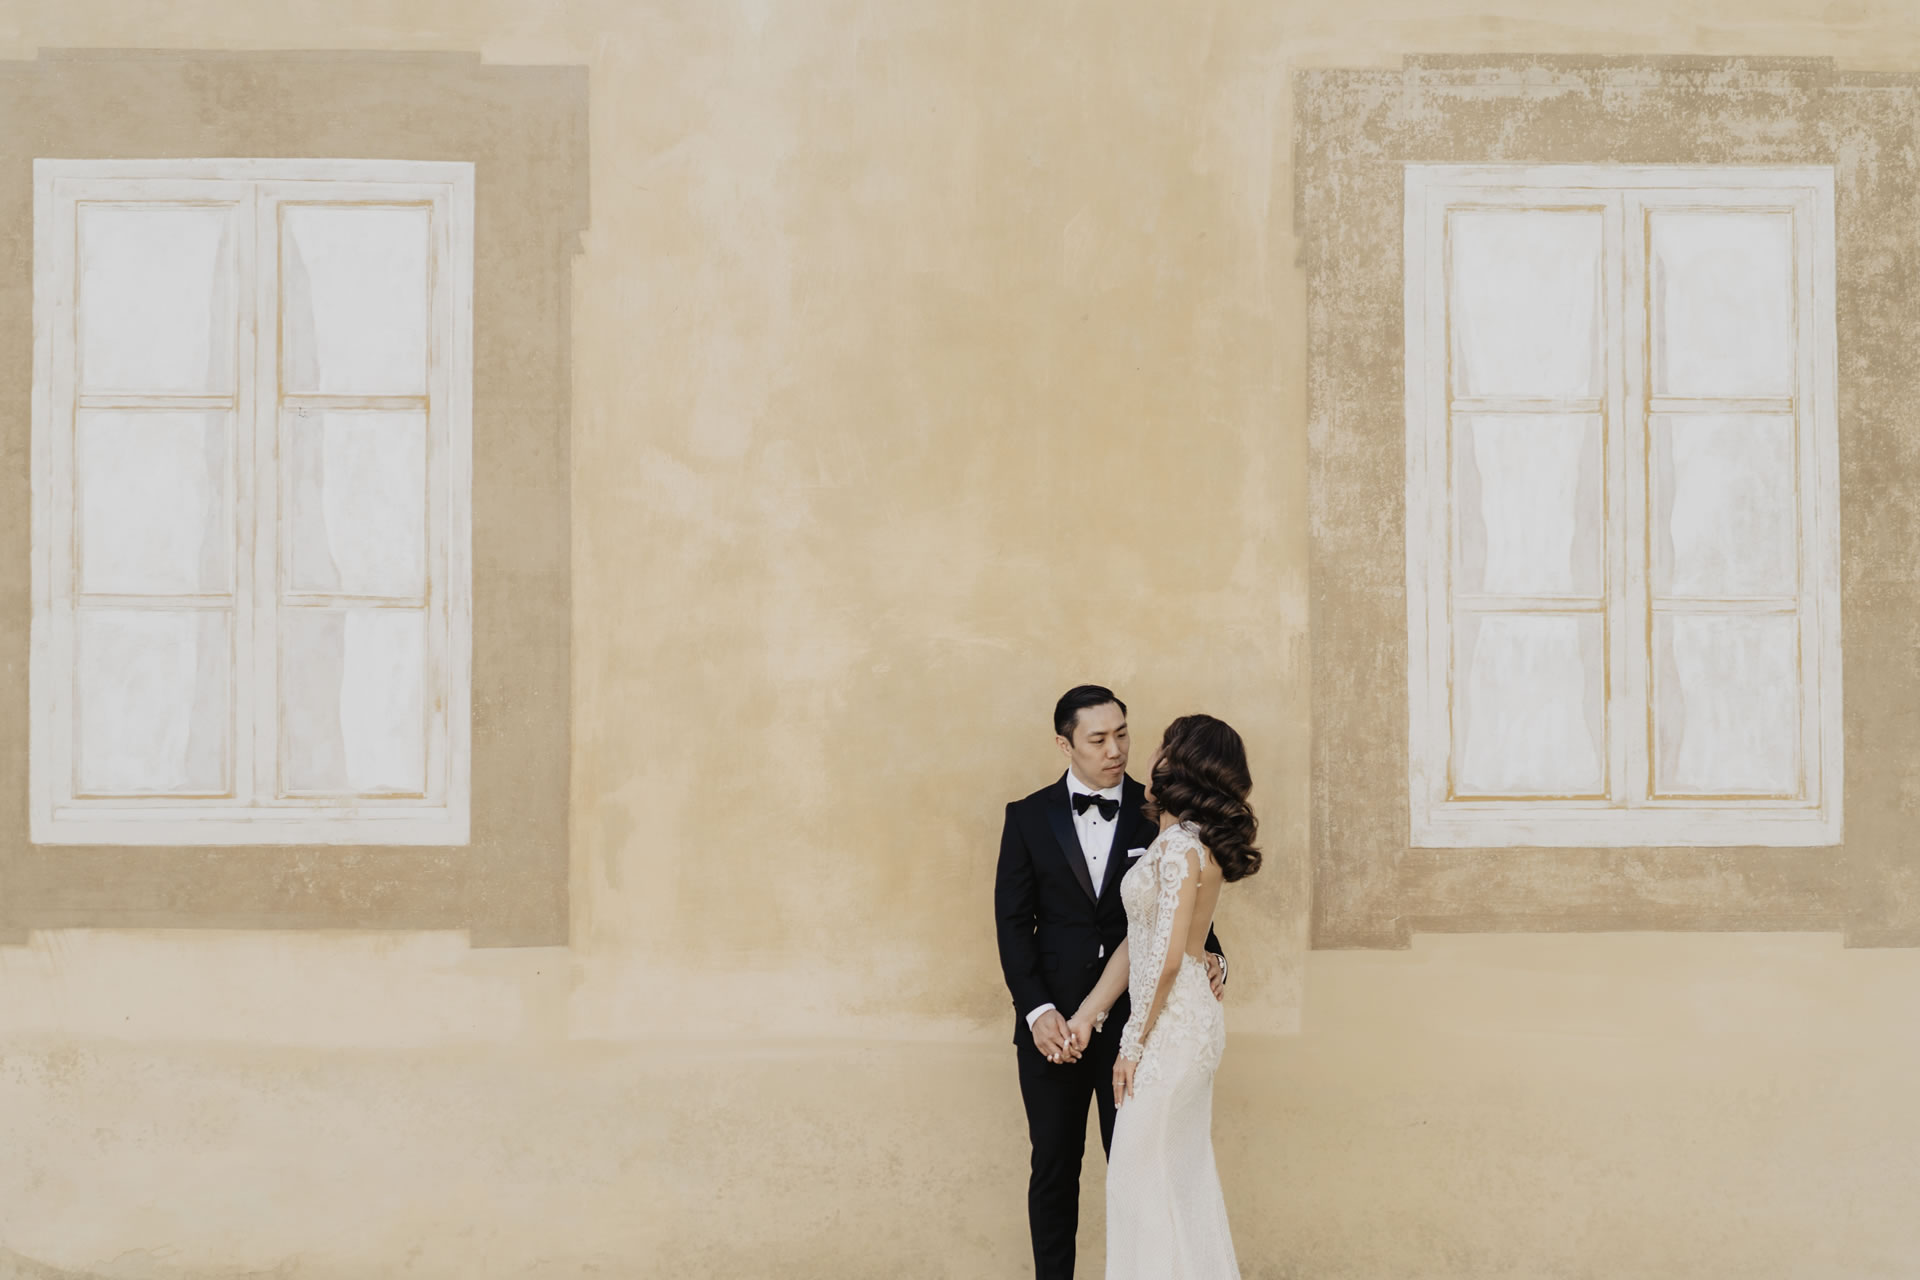 - 51 :: From Los angeles to Florence: a glamour asiatic wedding :: Luxury wedding photography - 50 ::  - 51